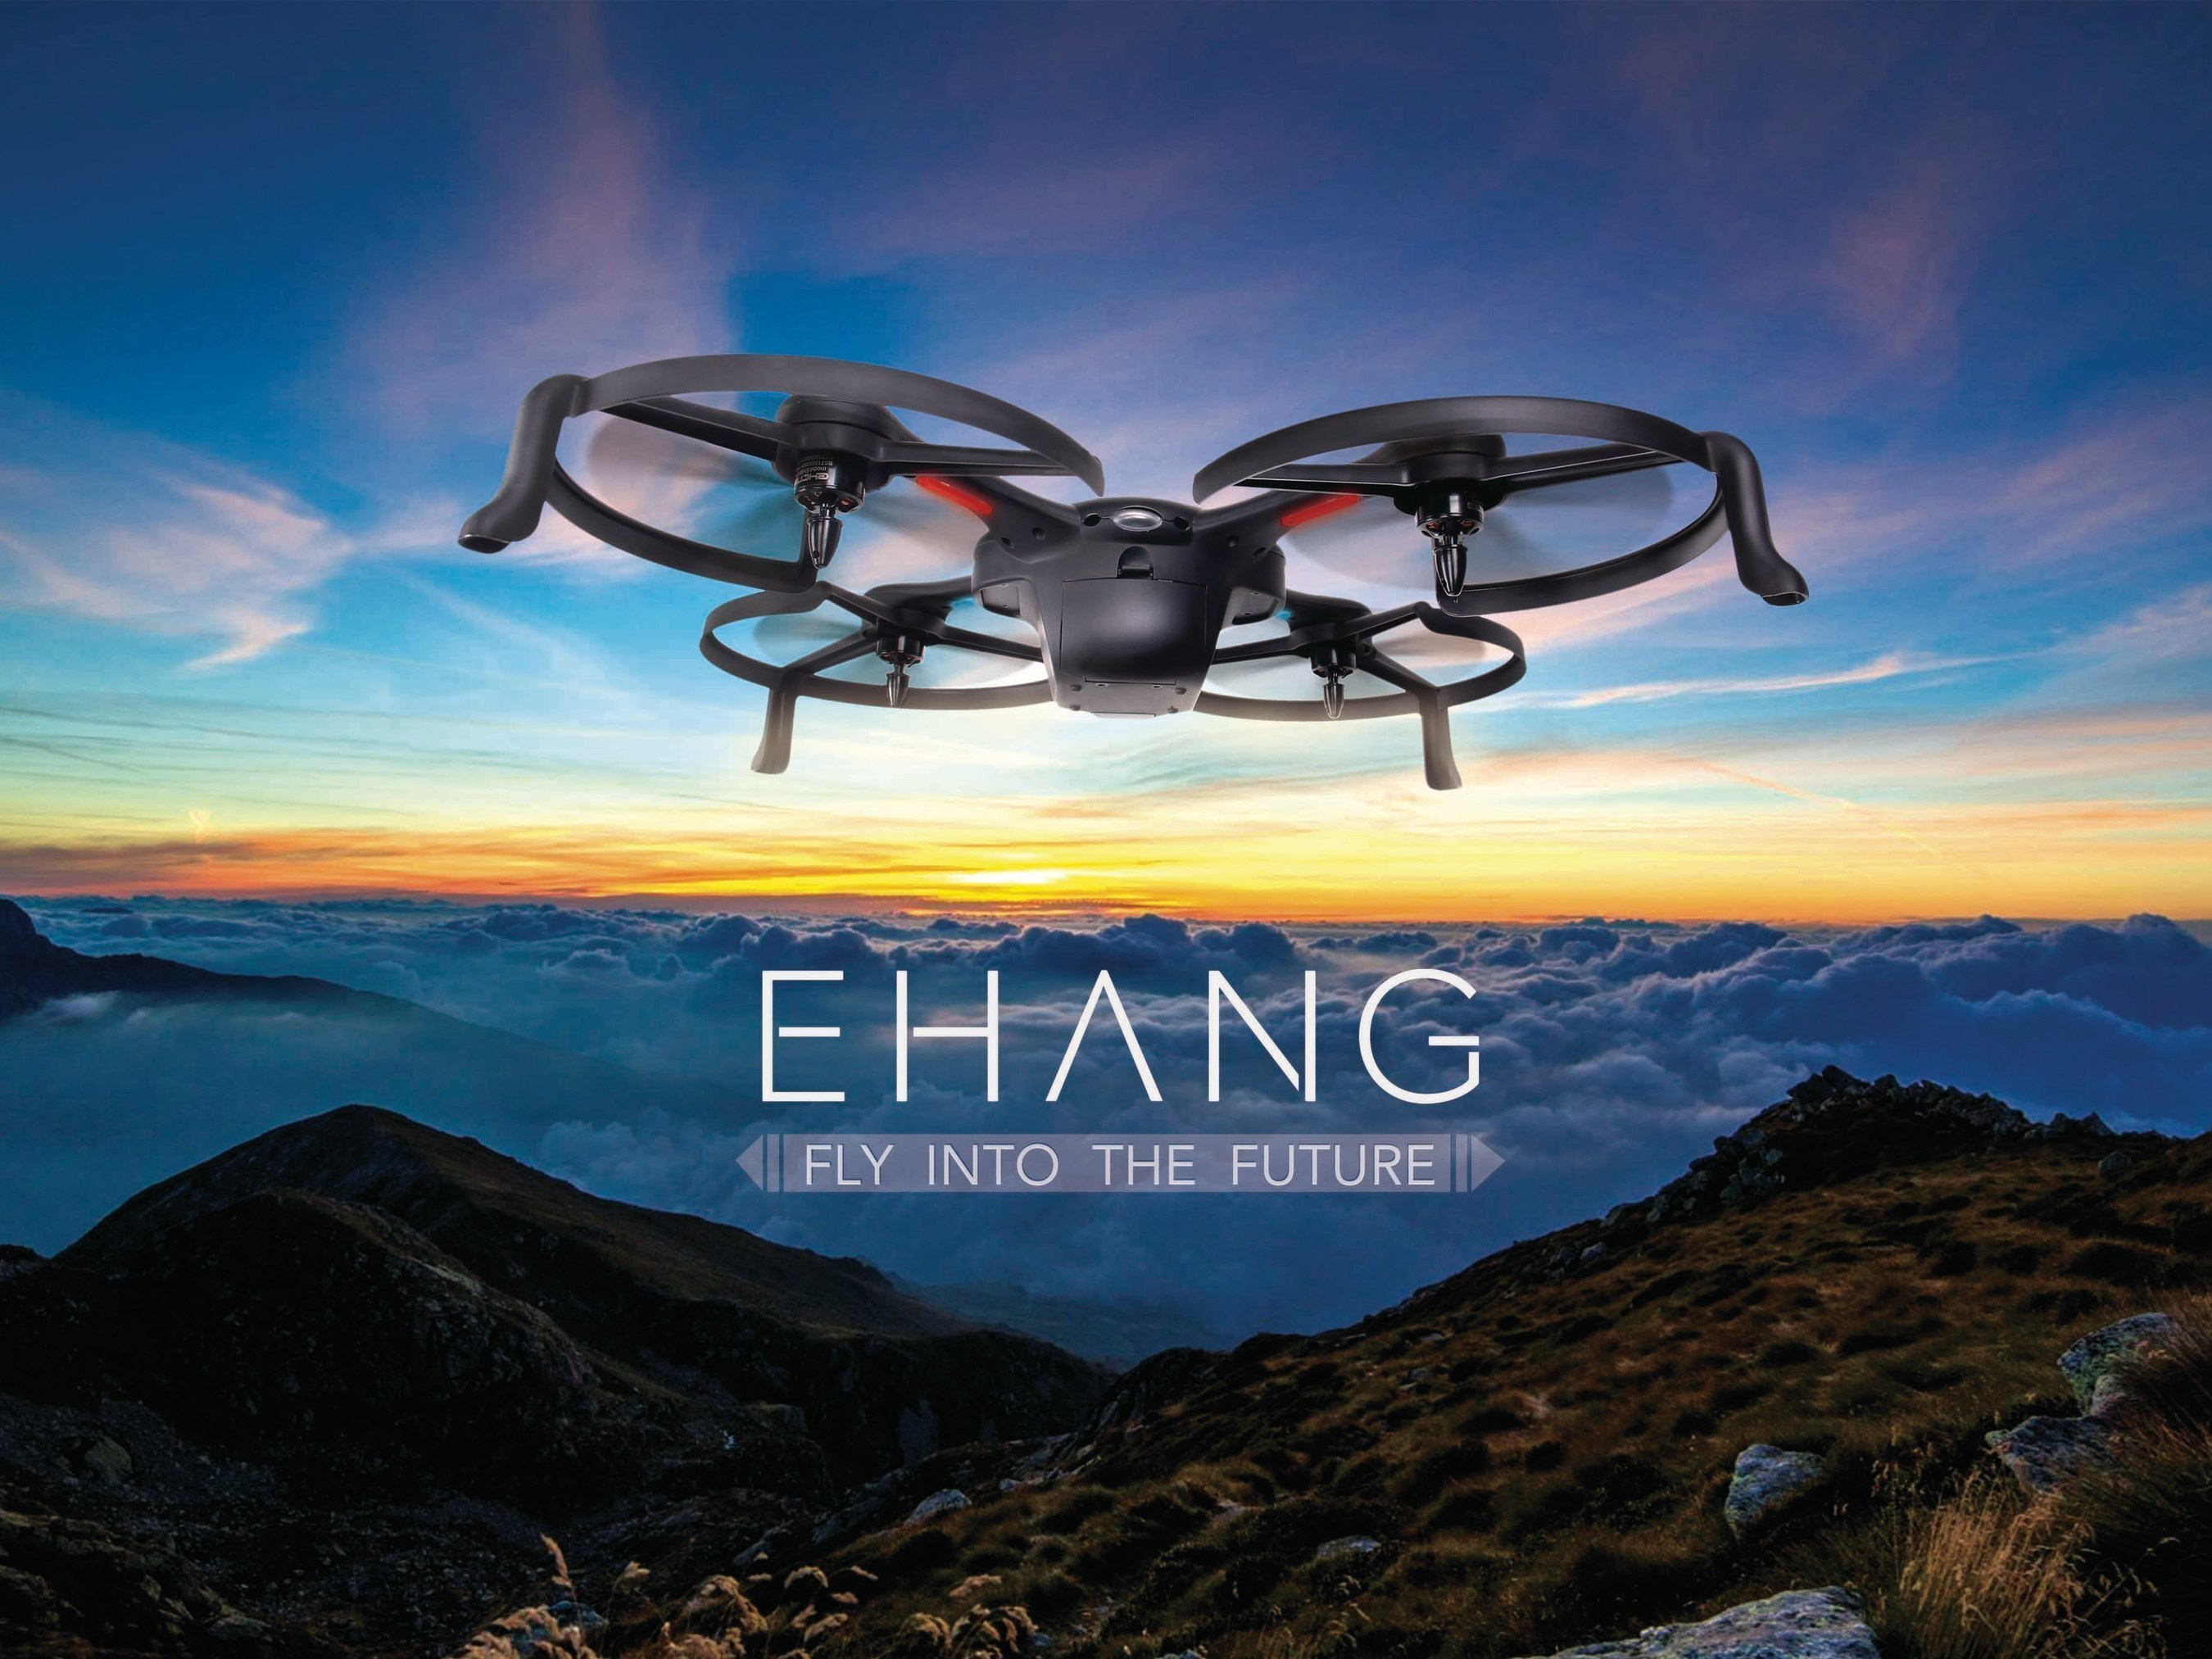 EHANG Raises $42M in Series B Financing and Brings Four Executives From Global 500 and Public Hi-tech Companies Onboard